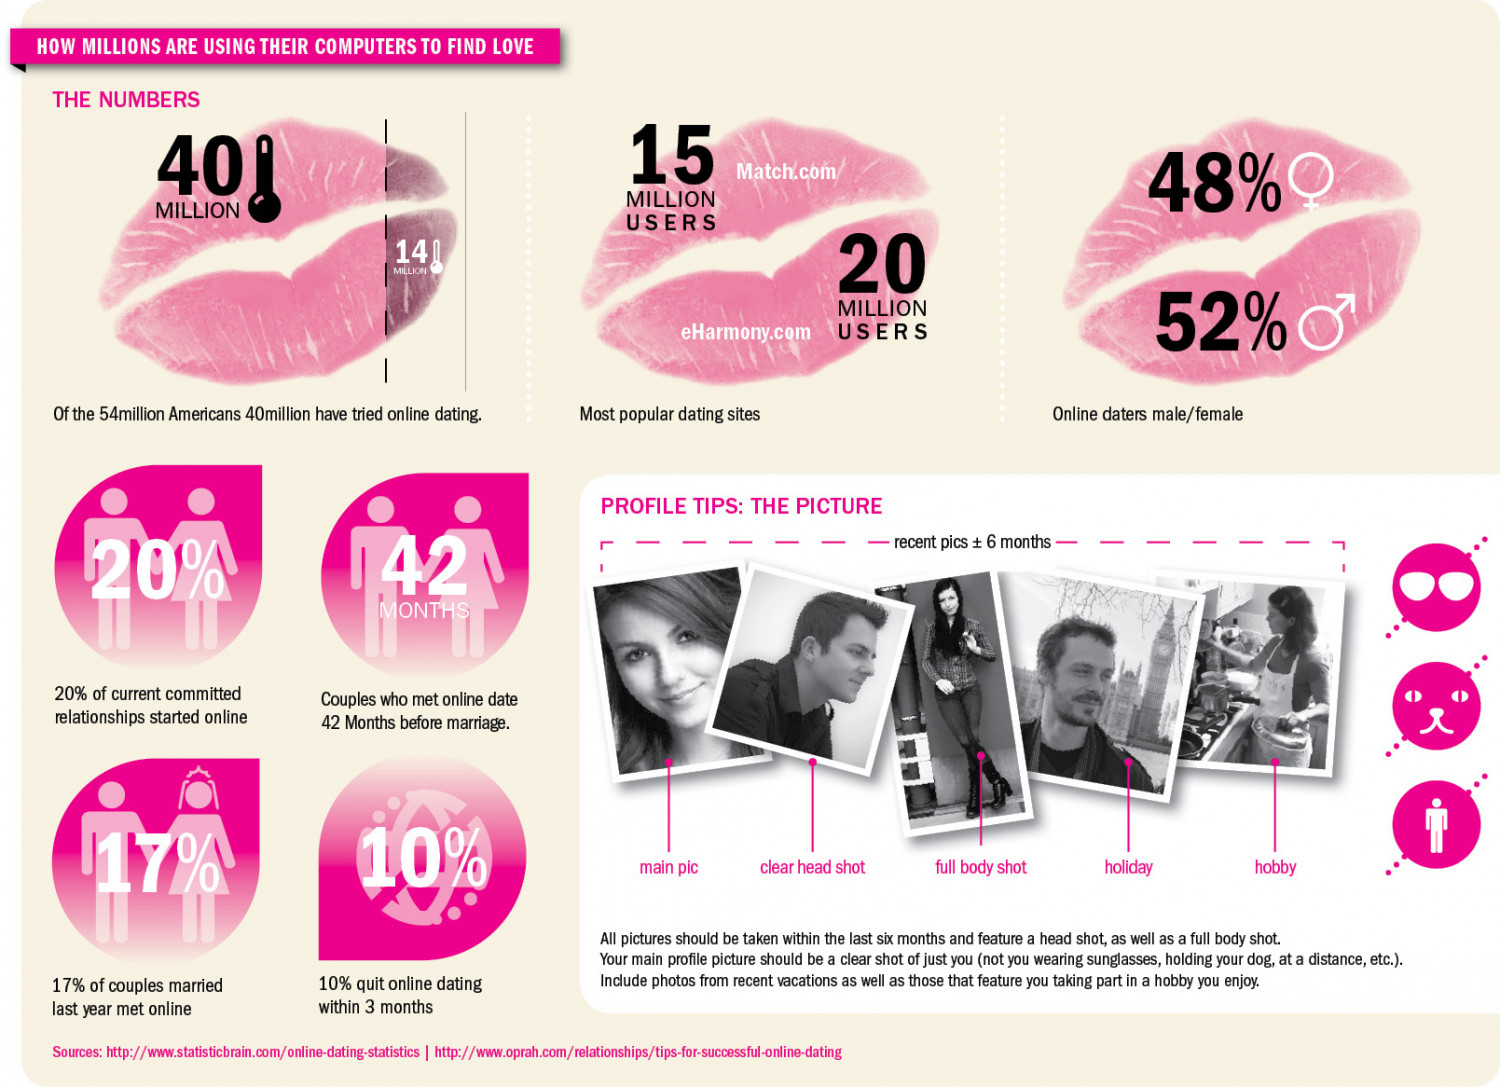 Online dating stats Infographic